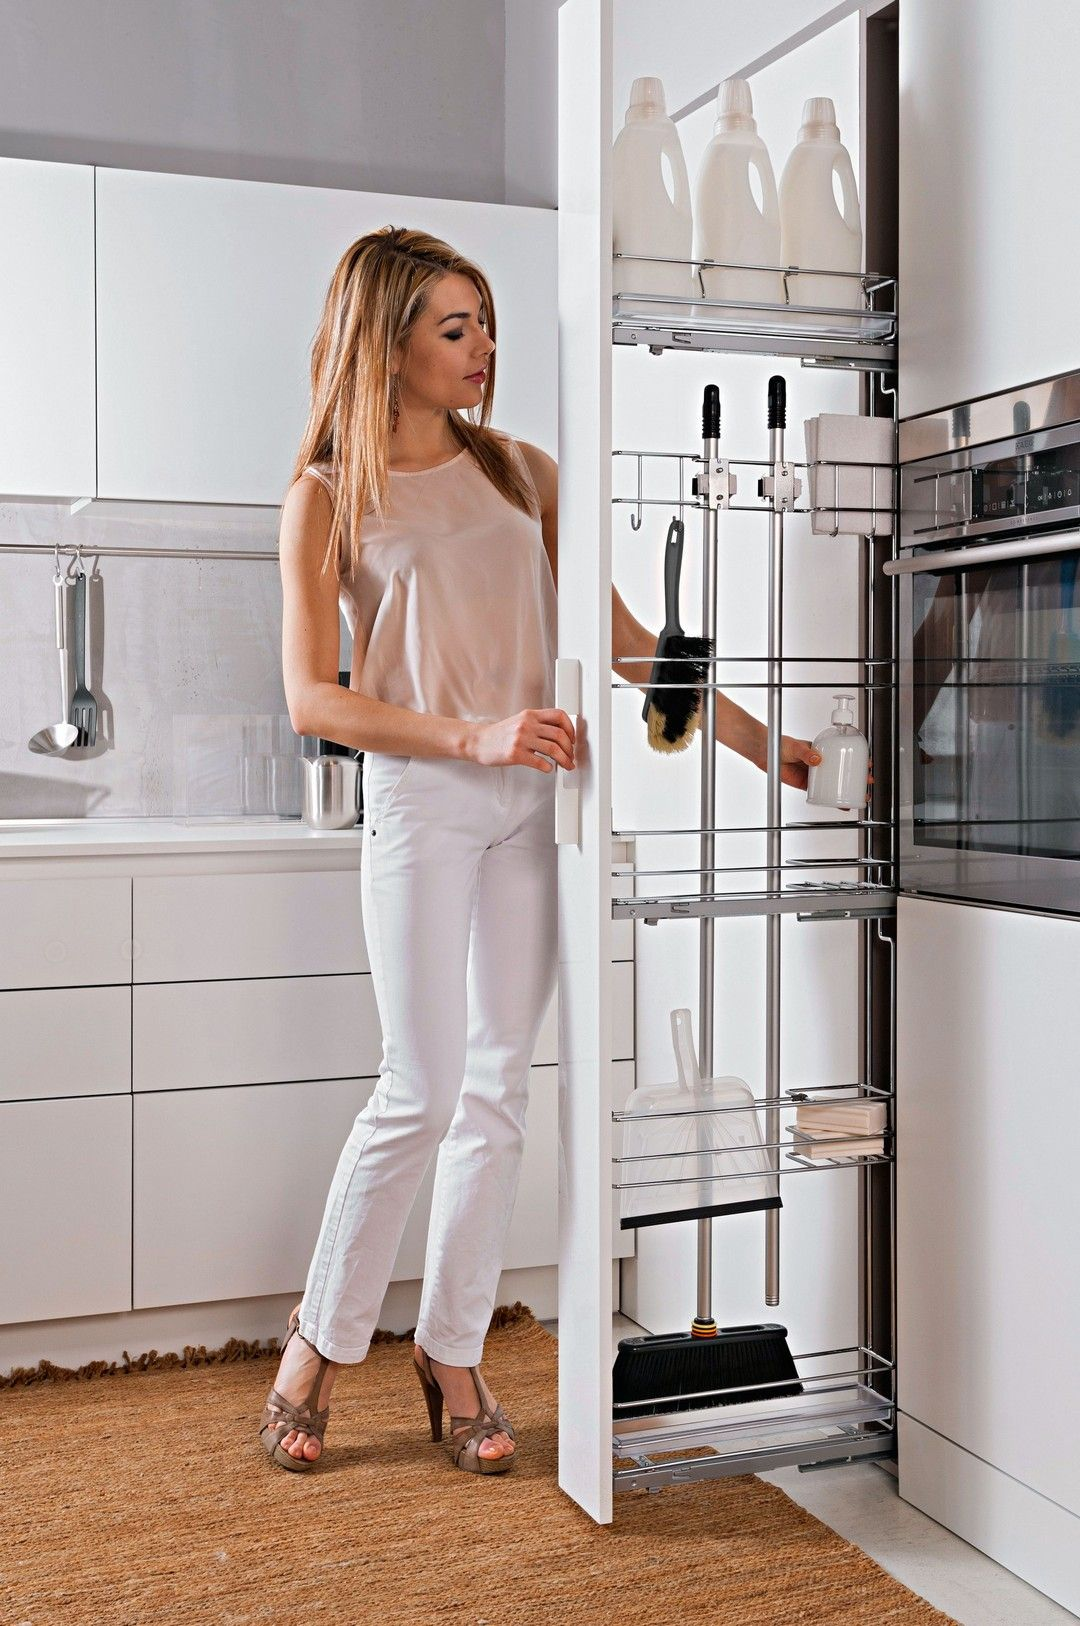 27 Fabulous Solution When Space Is Too Tight For A Standard Hinged Door Broom Storage Laundry Room Design Kitchen Interior Design Modern